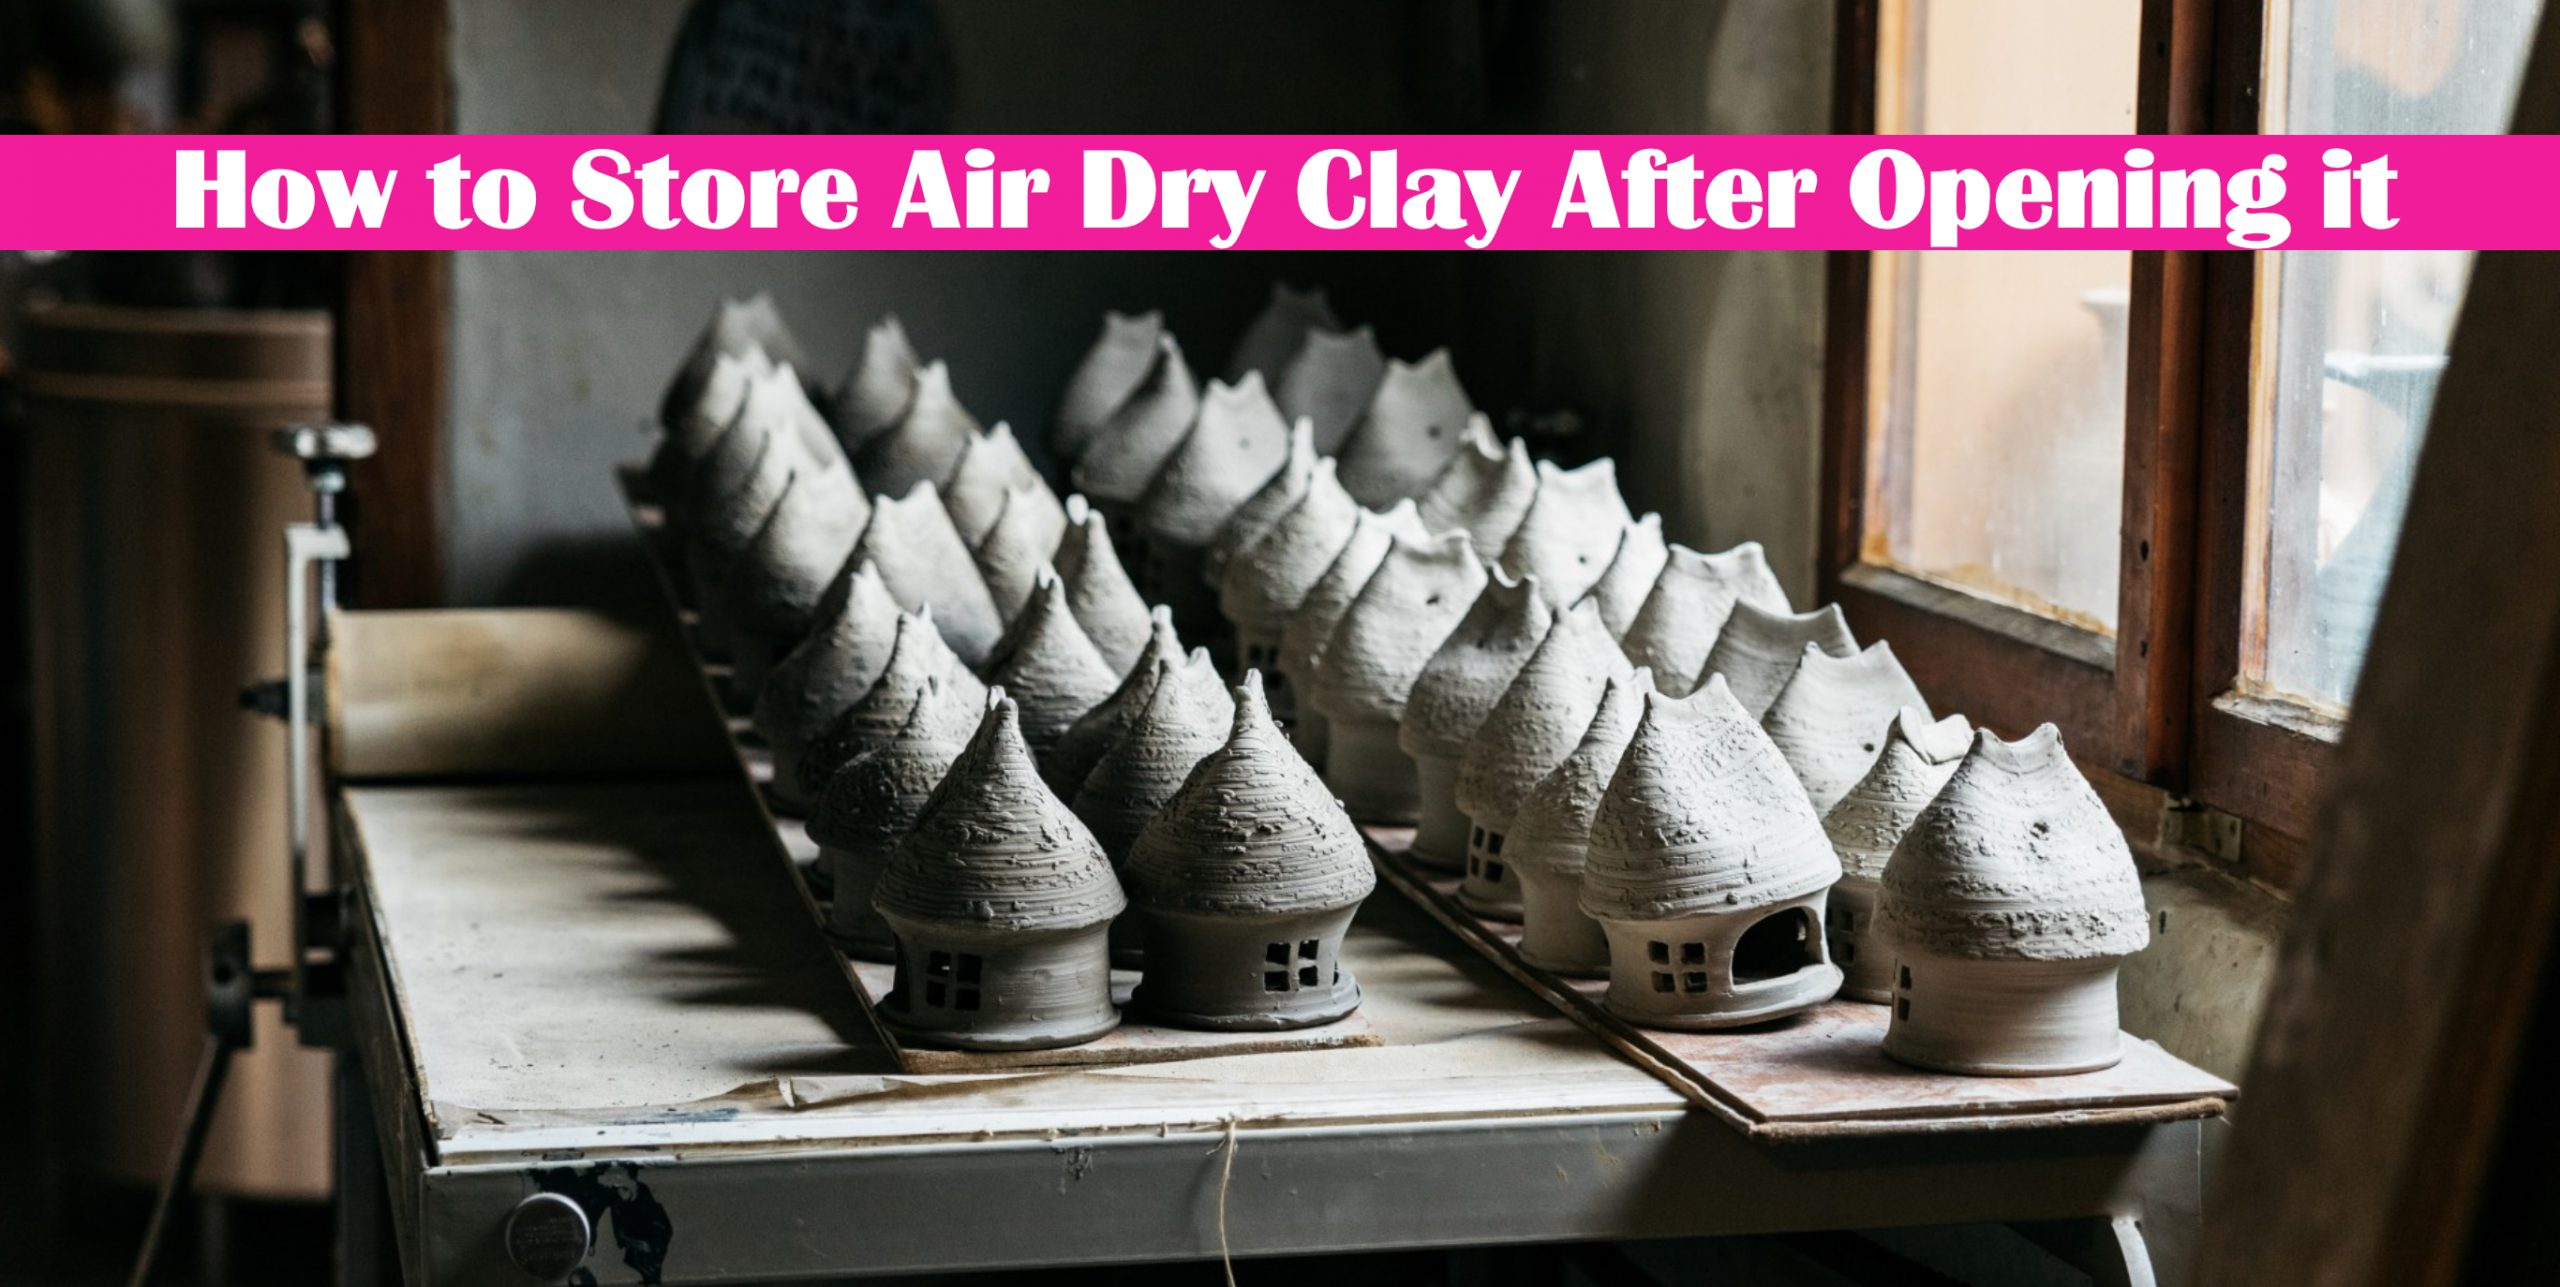 How to Store Air Dry Clay After Opening it